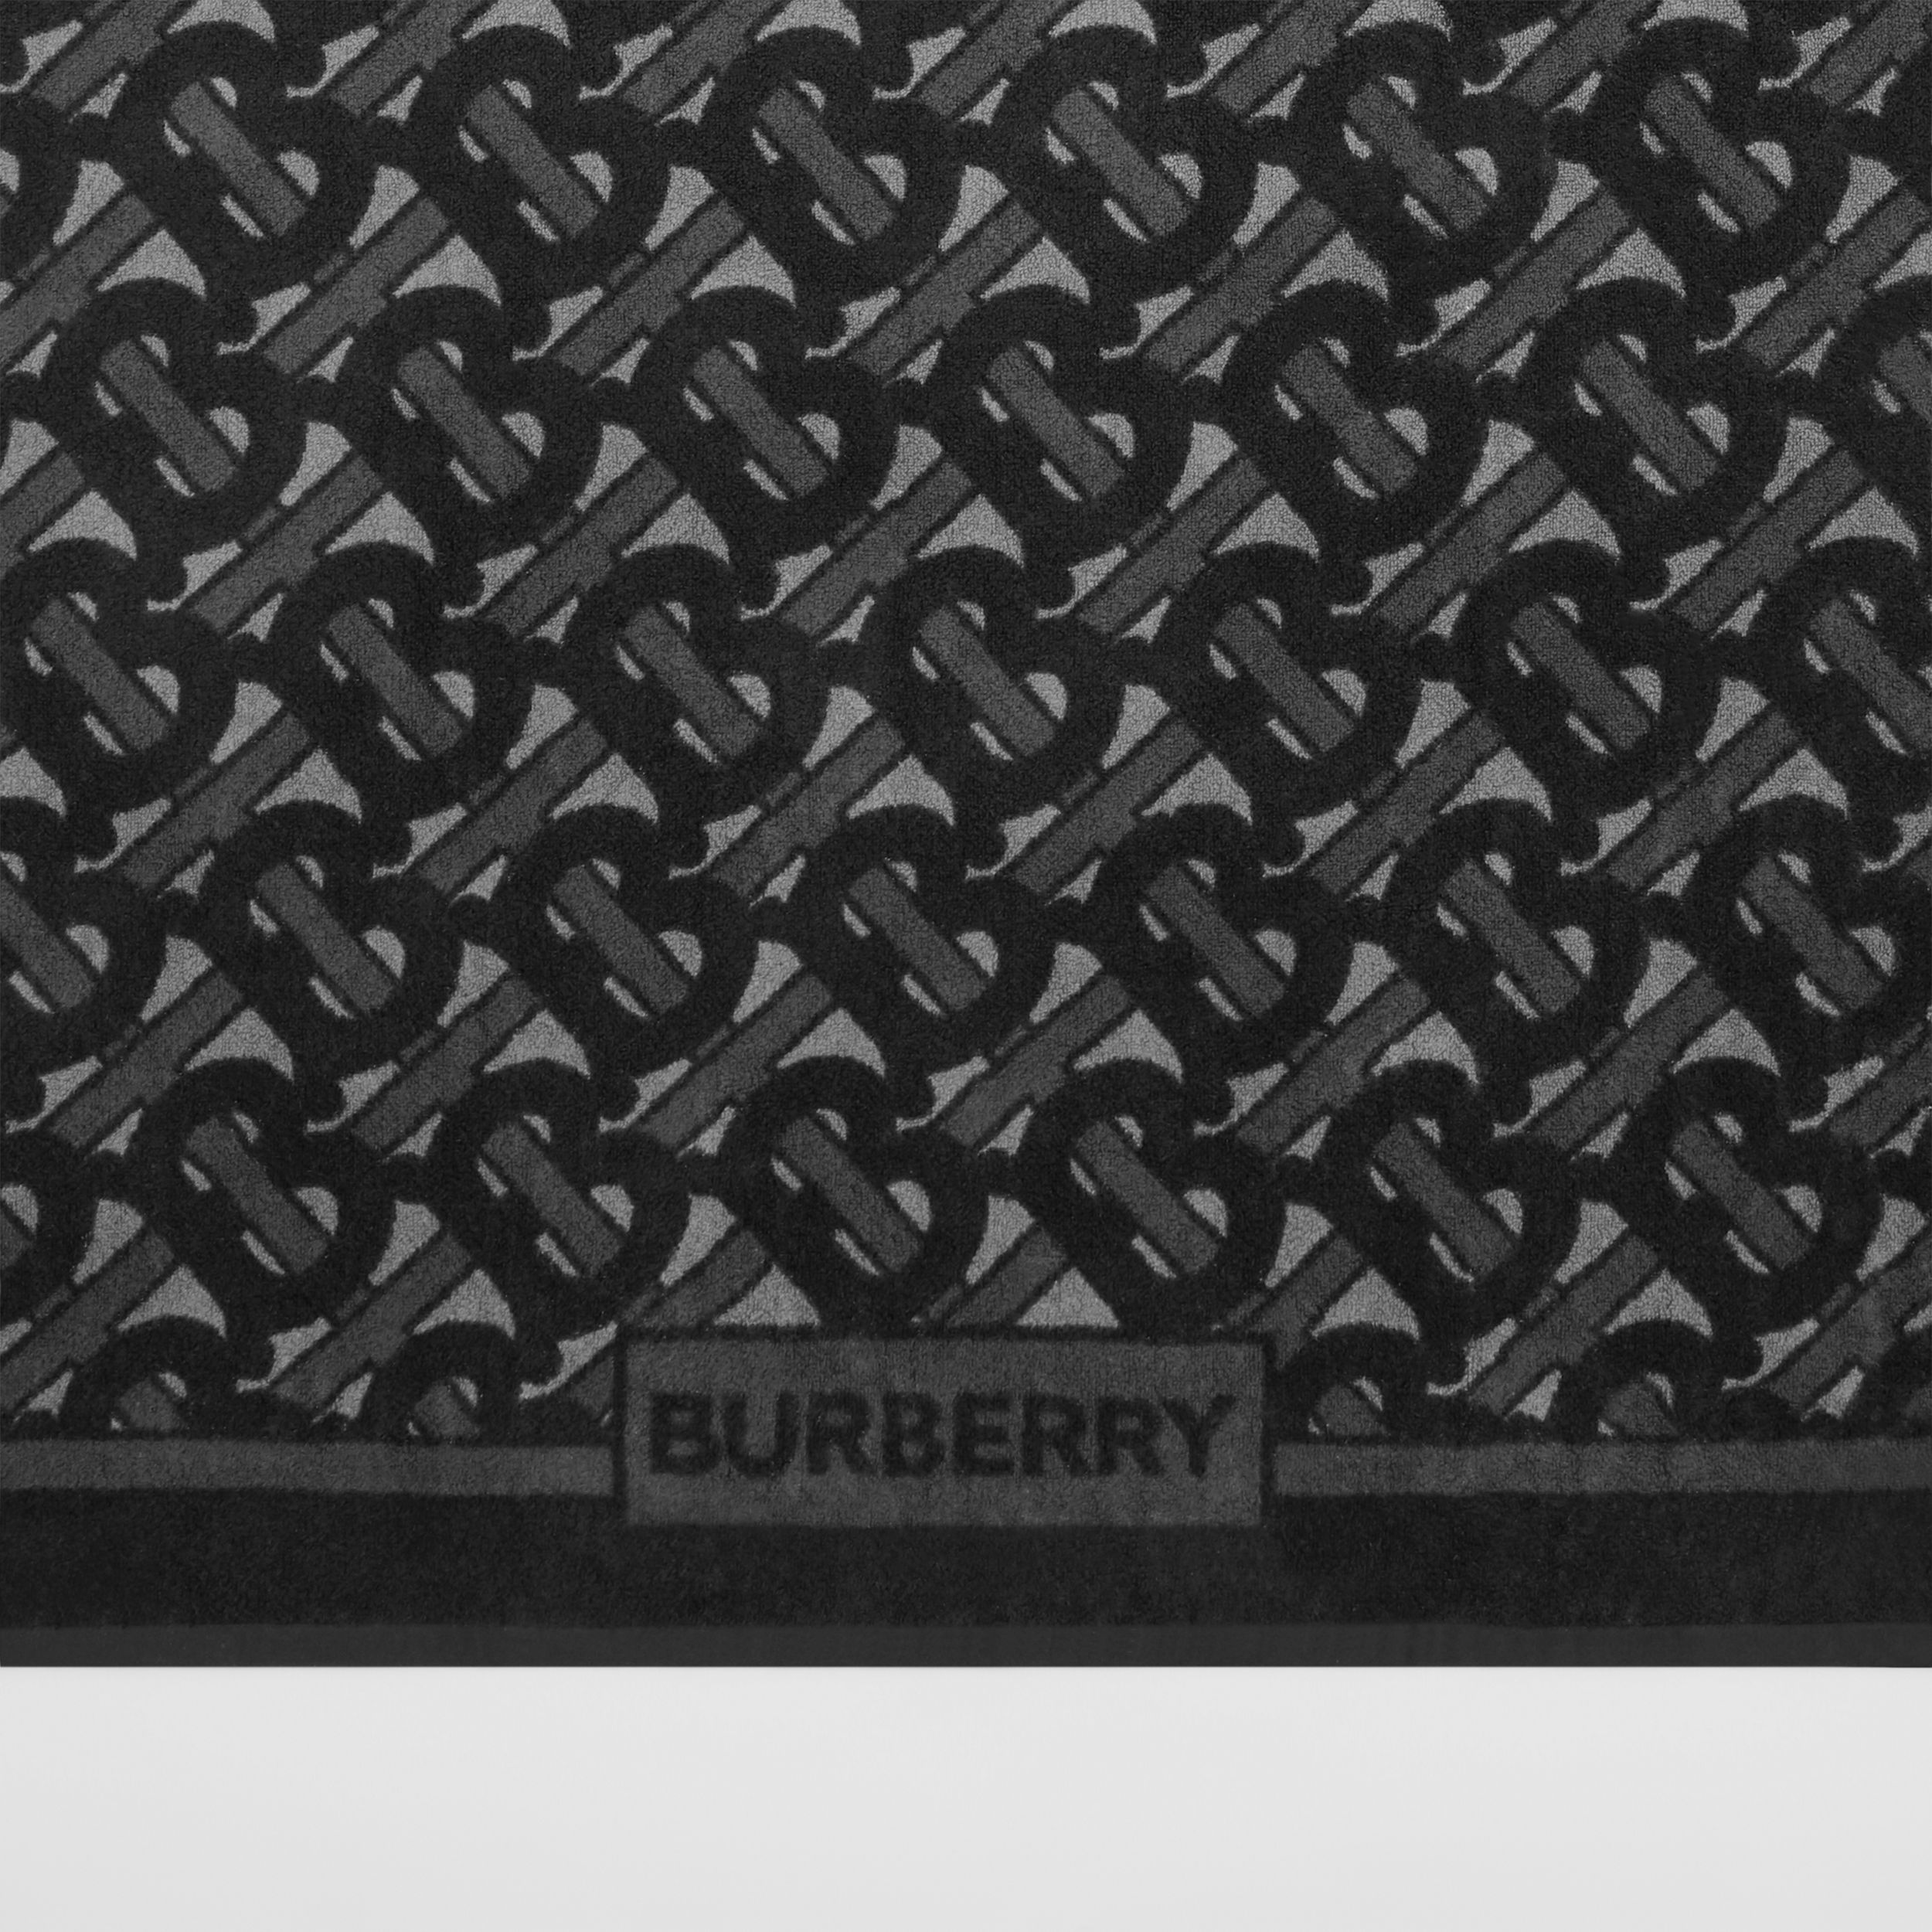 Monogram and Logo Print Cotton Towel in Graphite | Burberry - 2